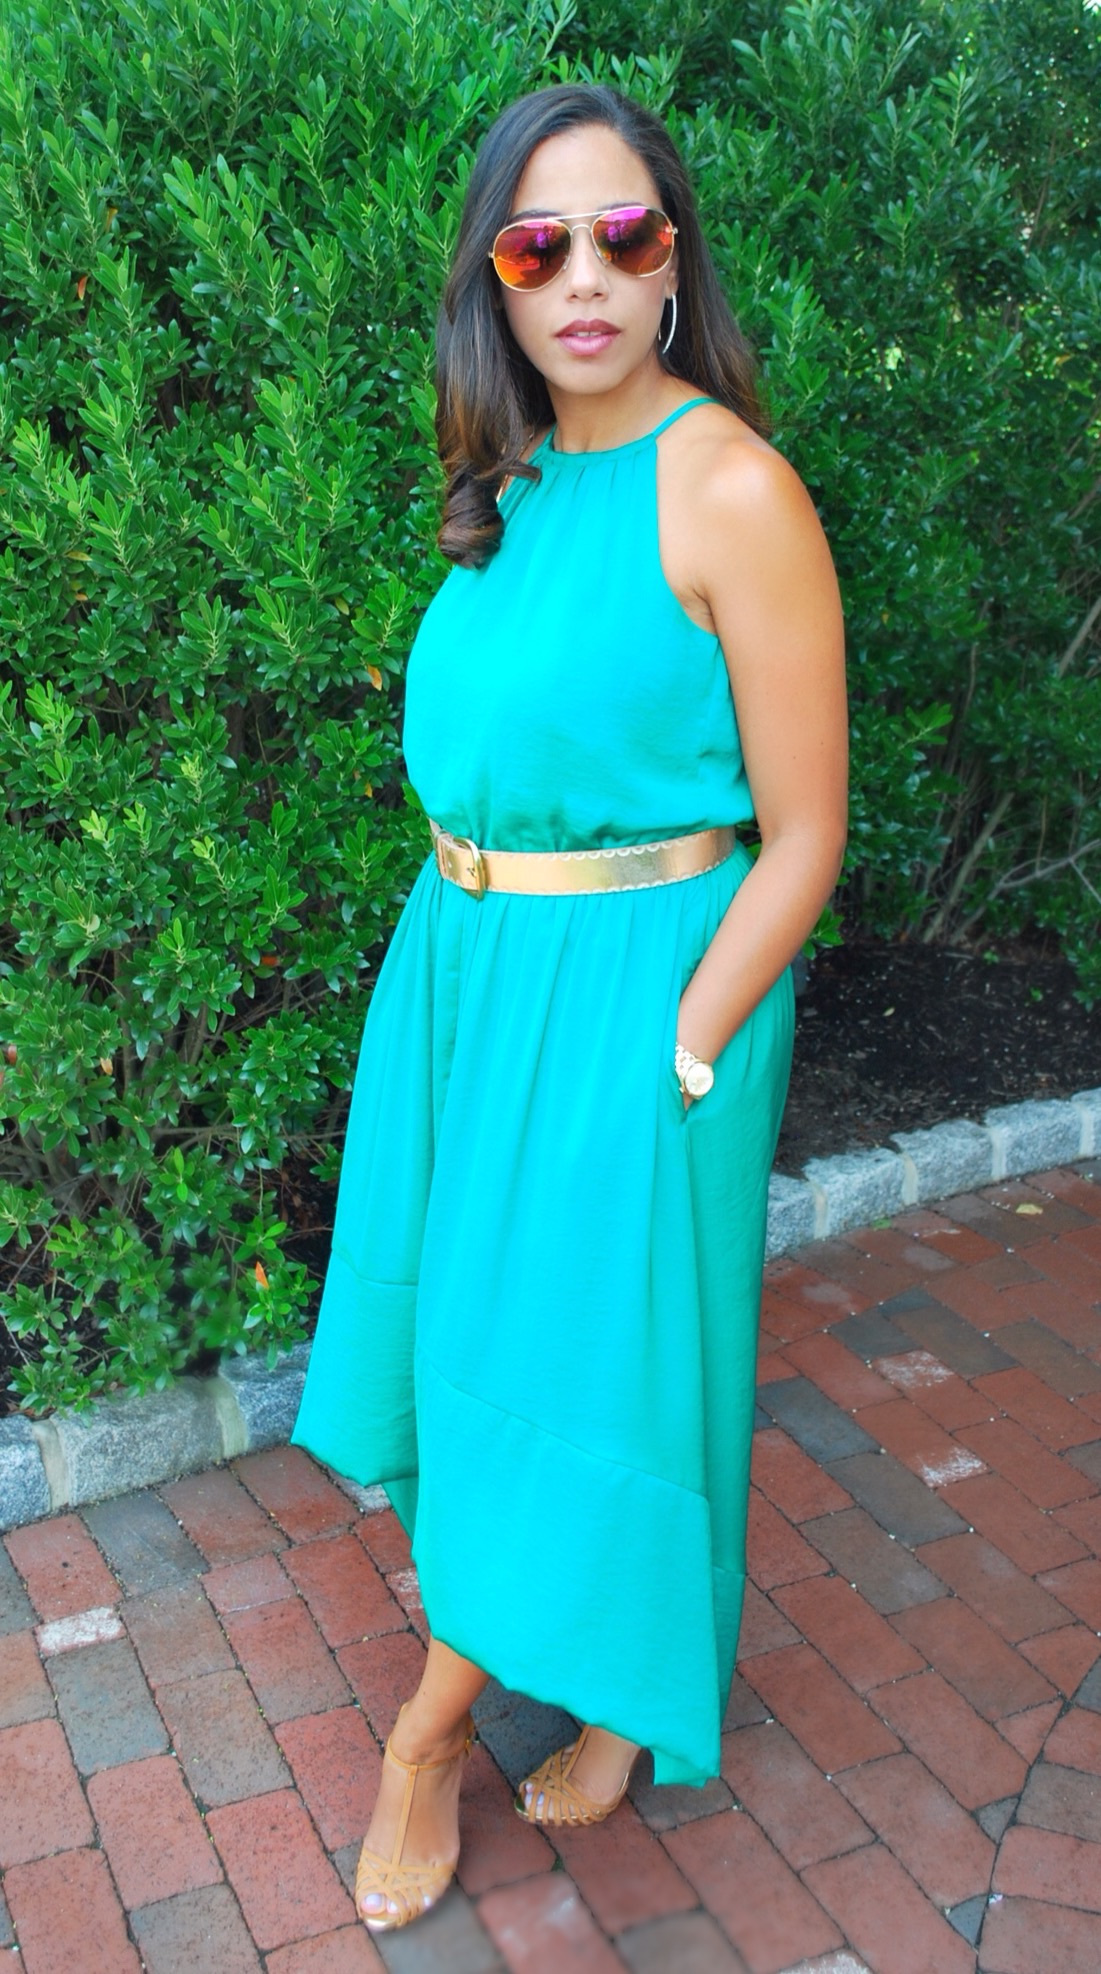 Green silk dress with gold belt